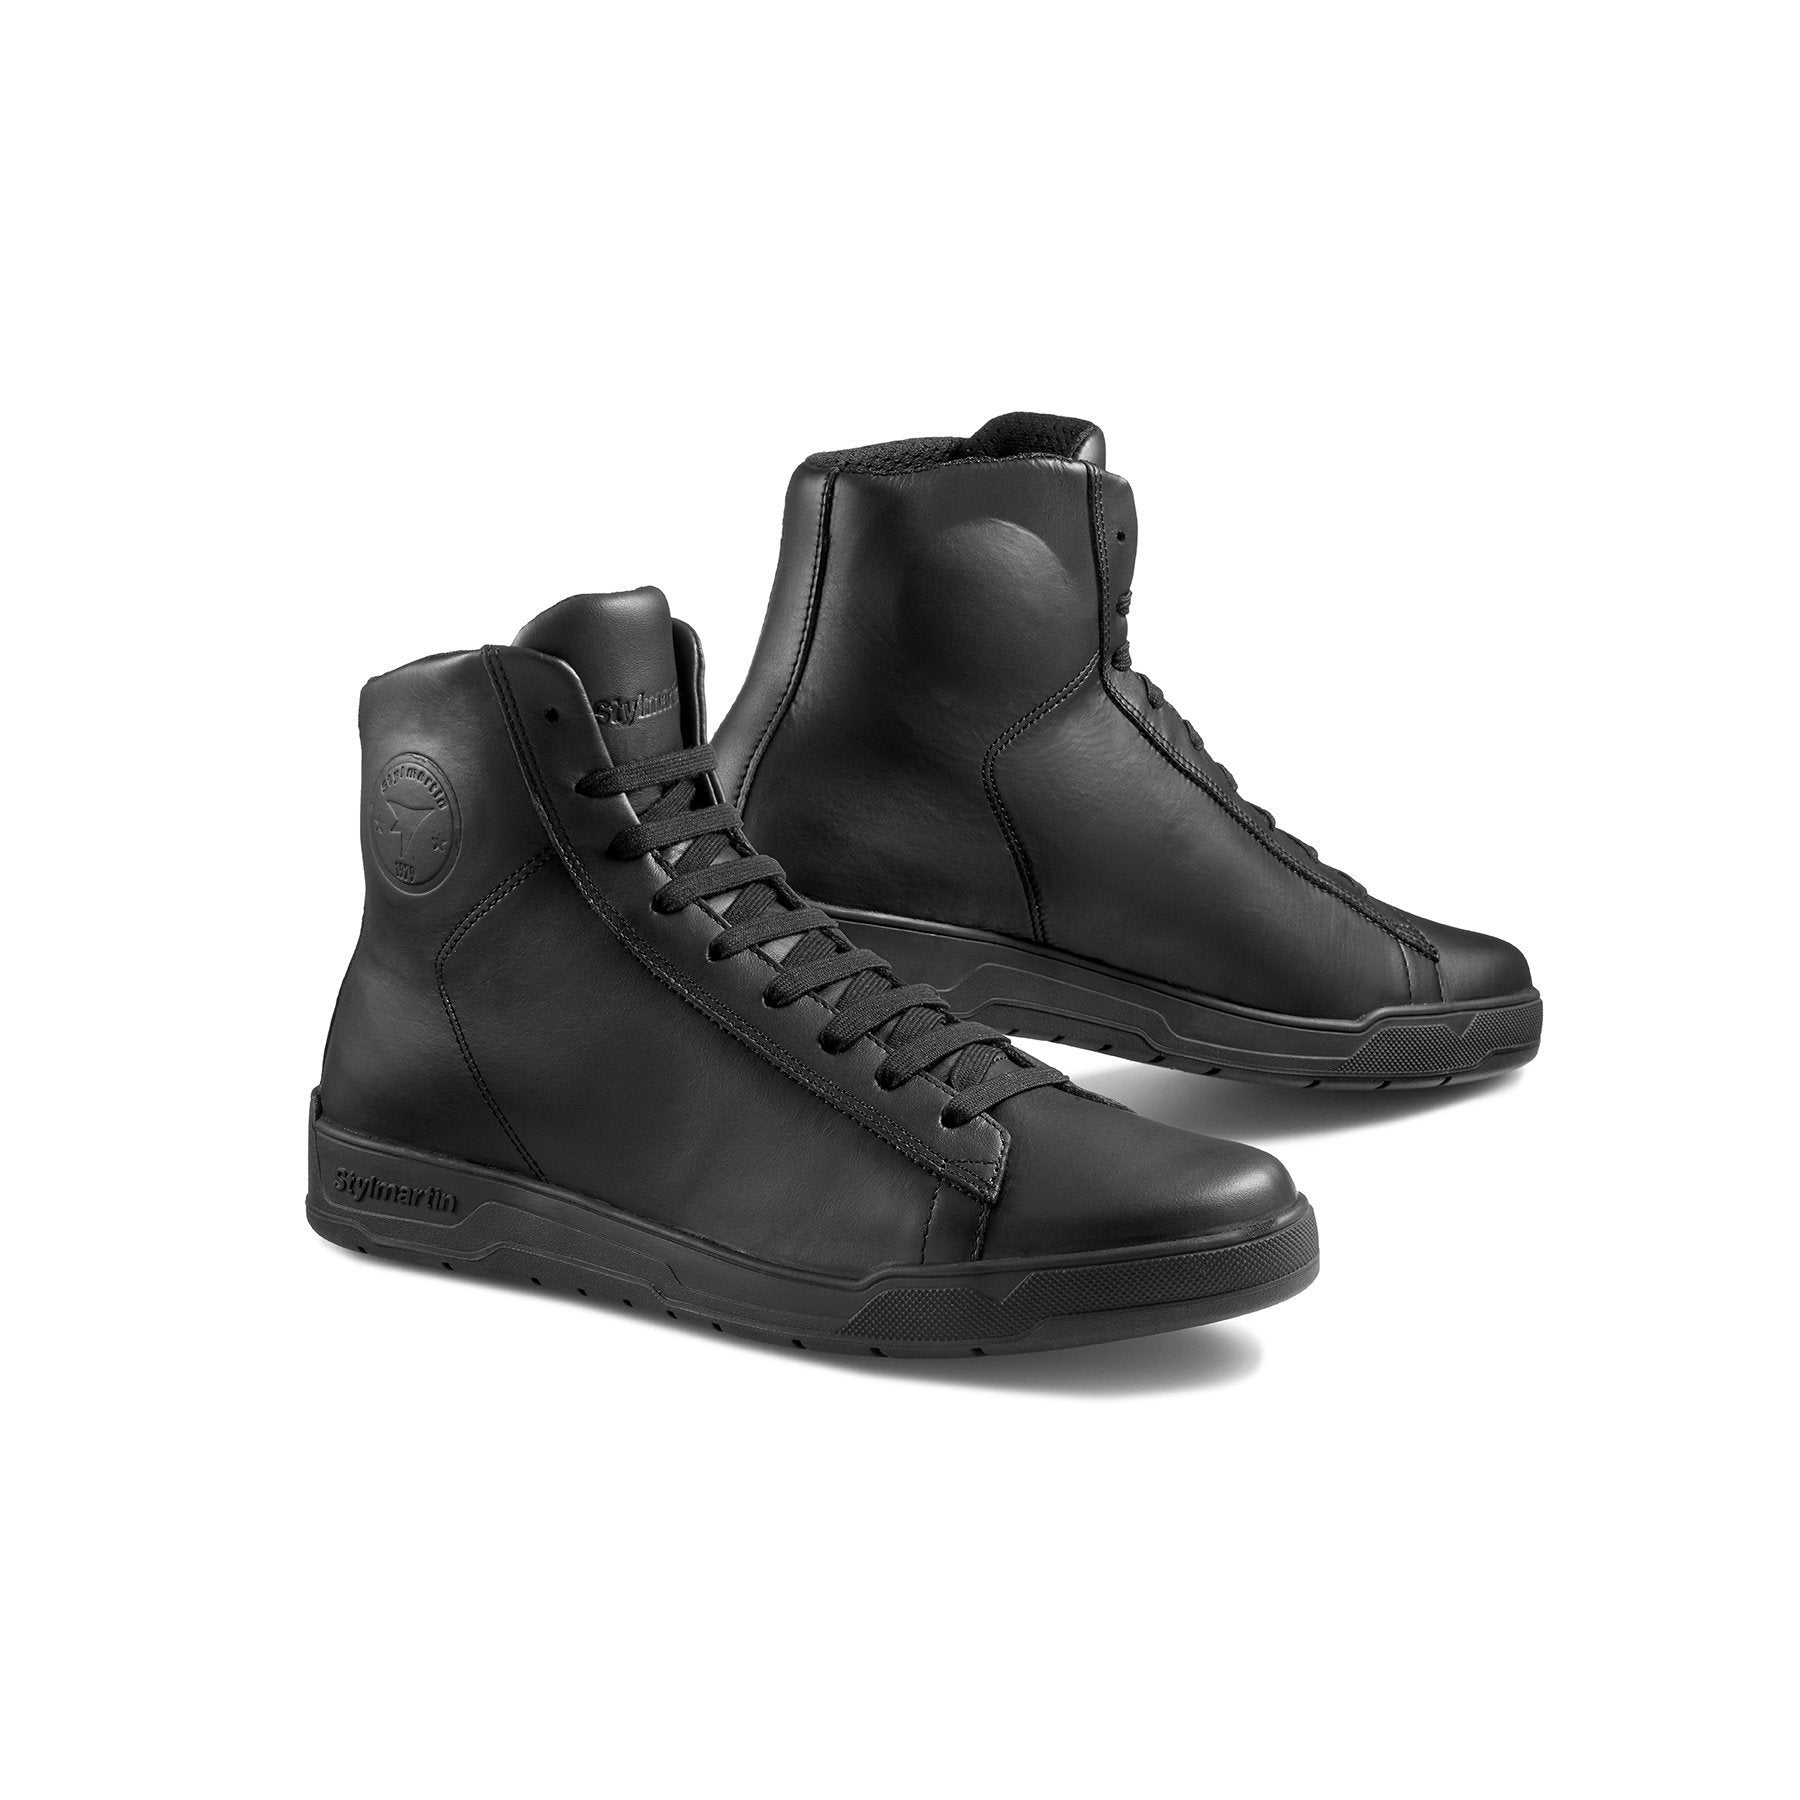 Stylmartin - Stylmartin Core WP Sneaker in Black - Boots - Salt Flats Clothing